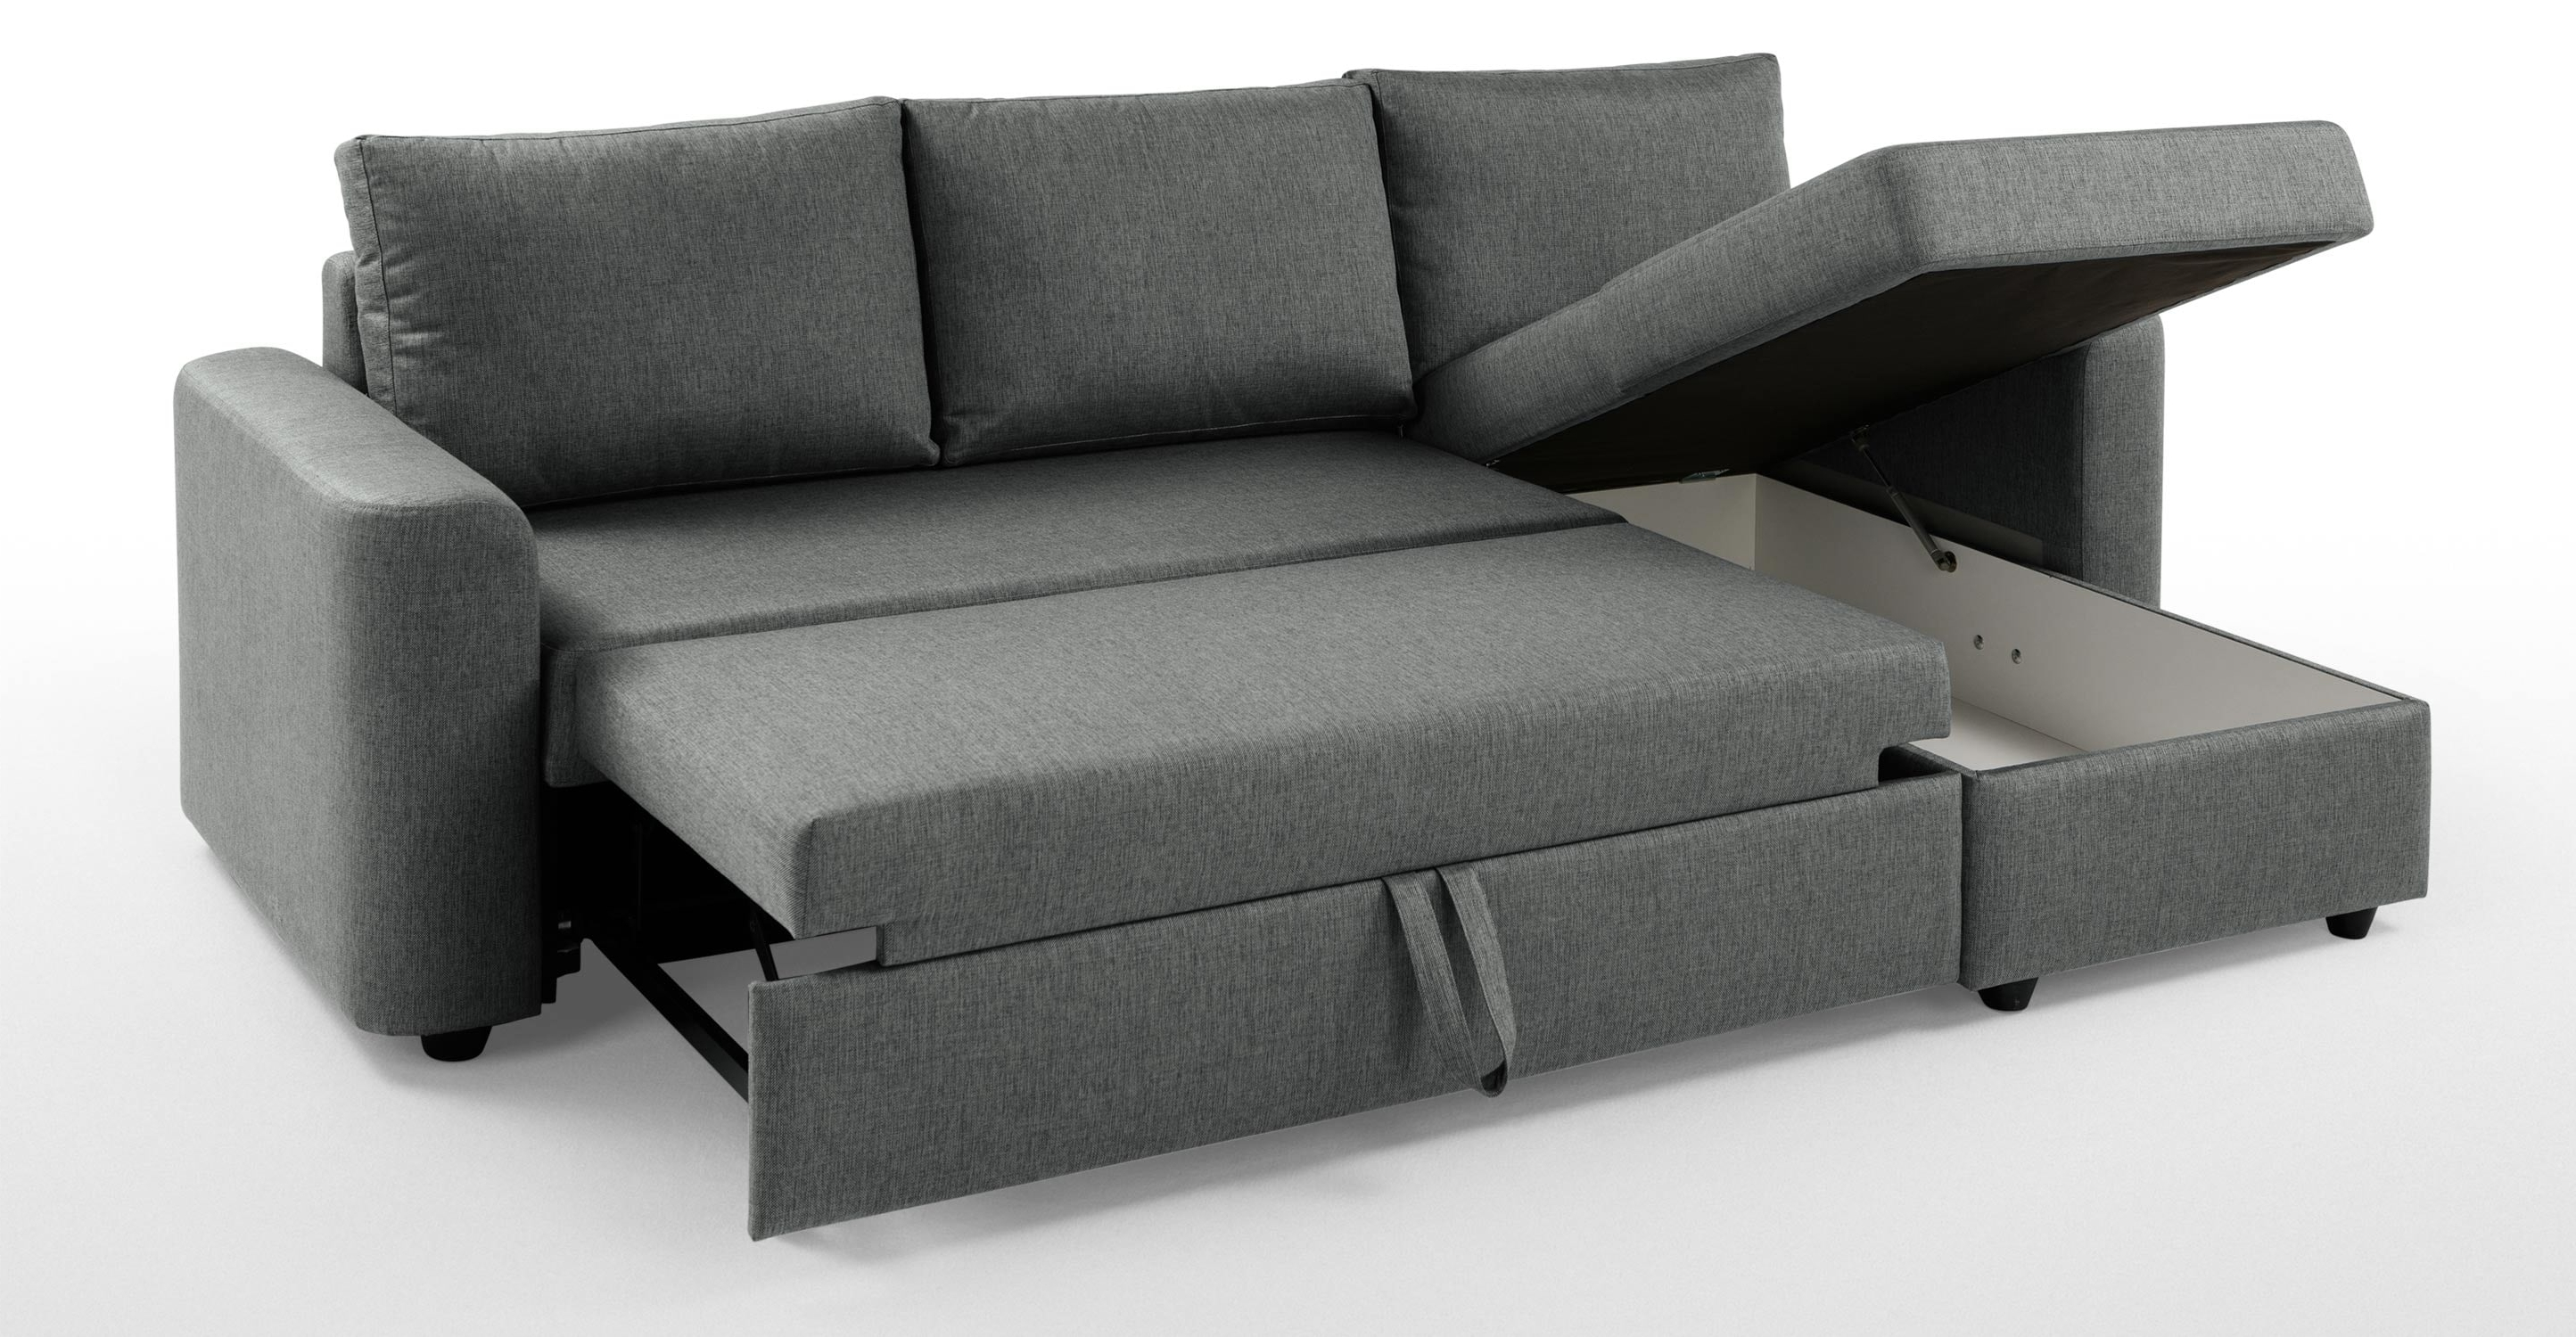 Widely Used Chaise Sofa Bed With Storage – Storage Designs Regarding Sofa Beds With Chaise (View 14 of 15)